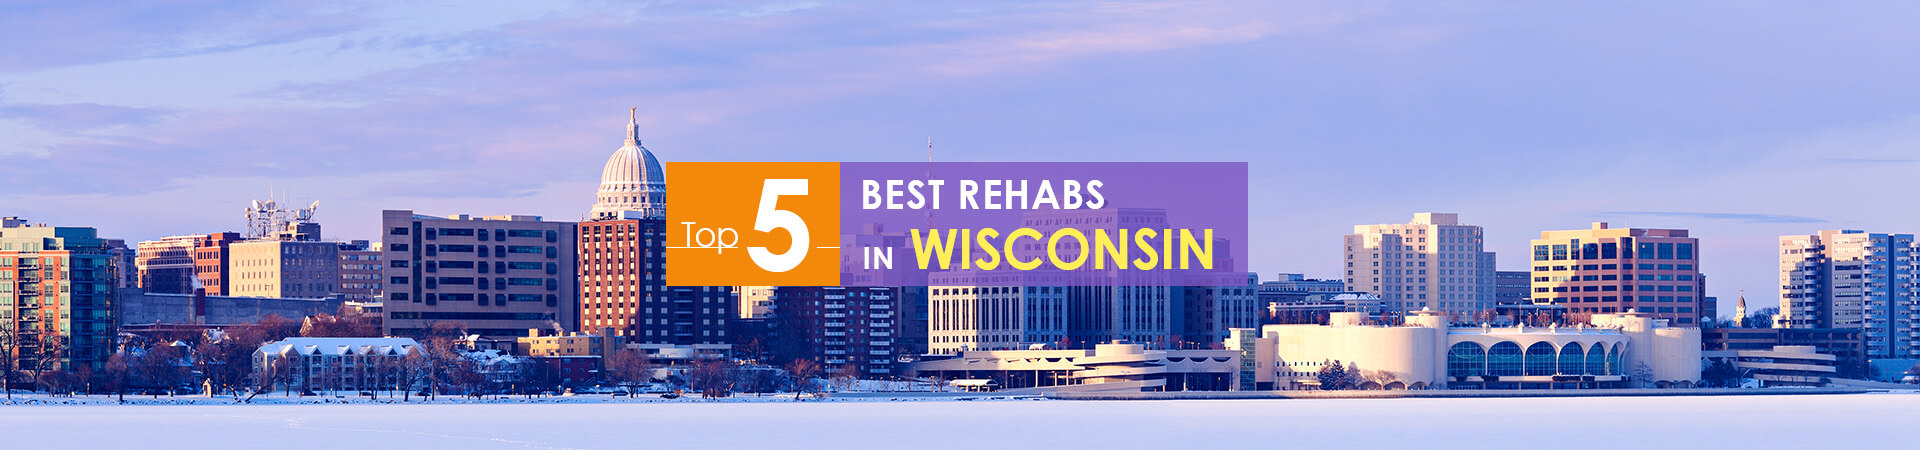 Wisconsin winter view and top 5 rehabs caption